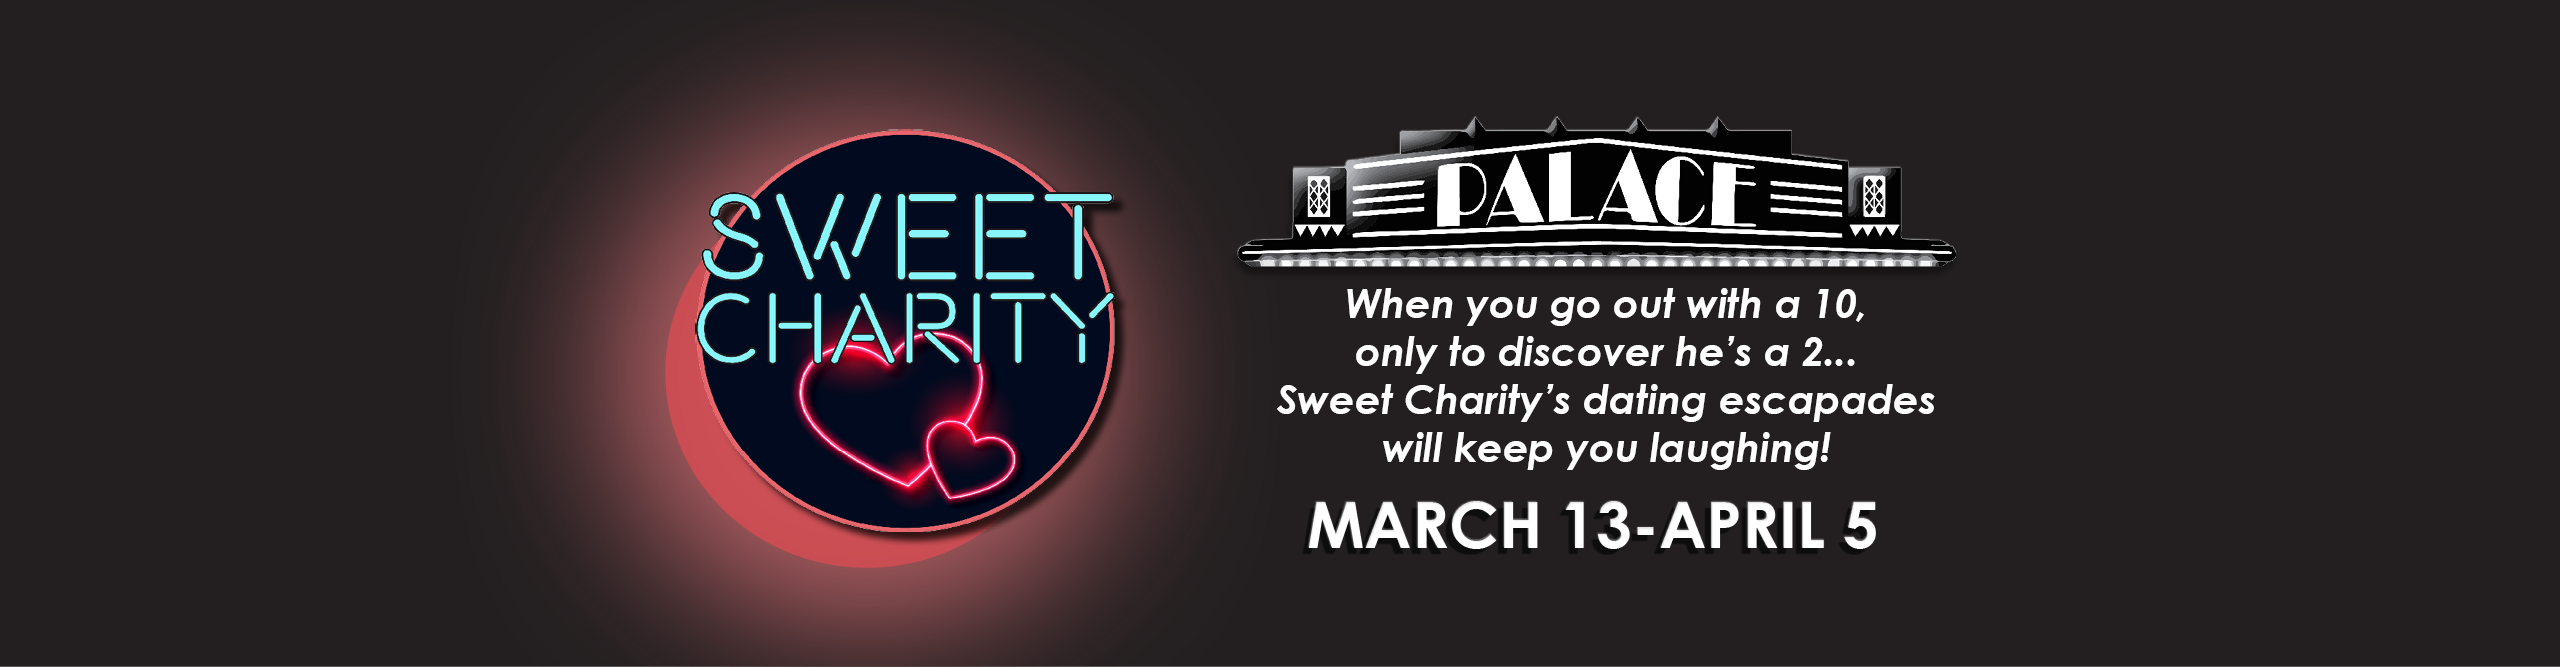 sweet charity, live theatre, austin shows